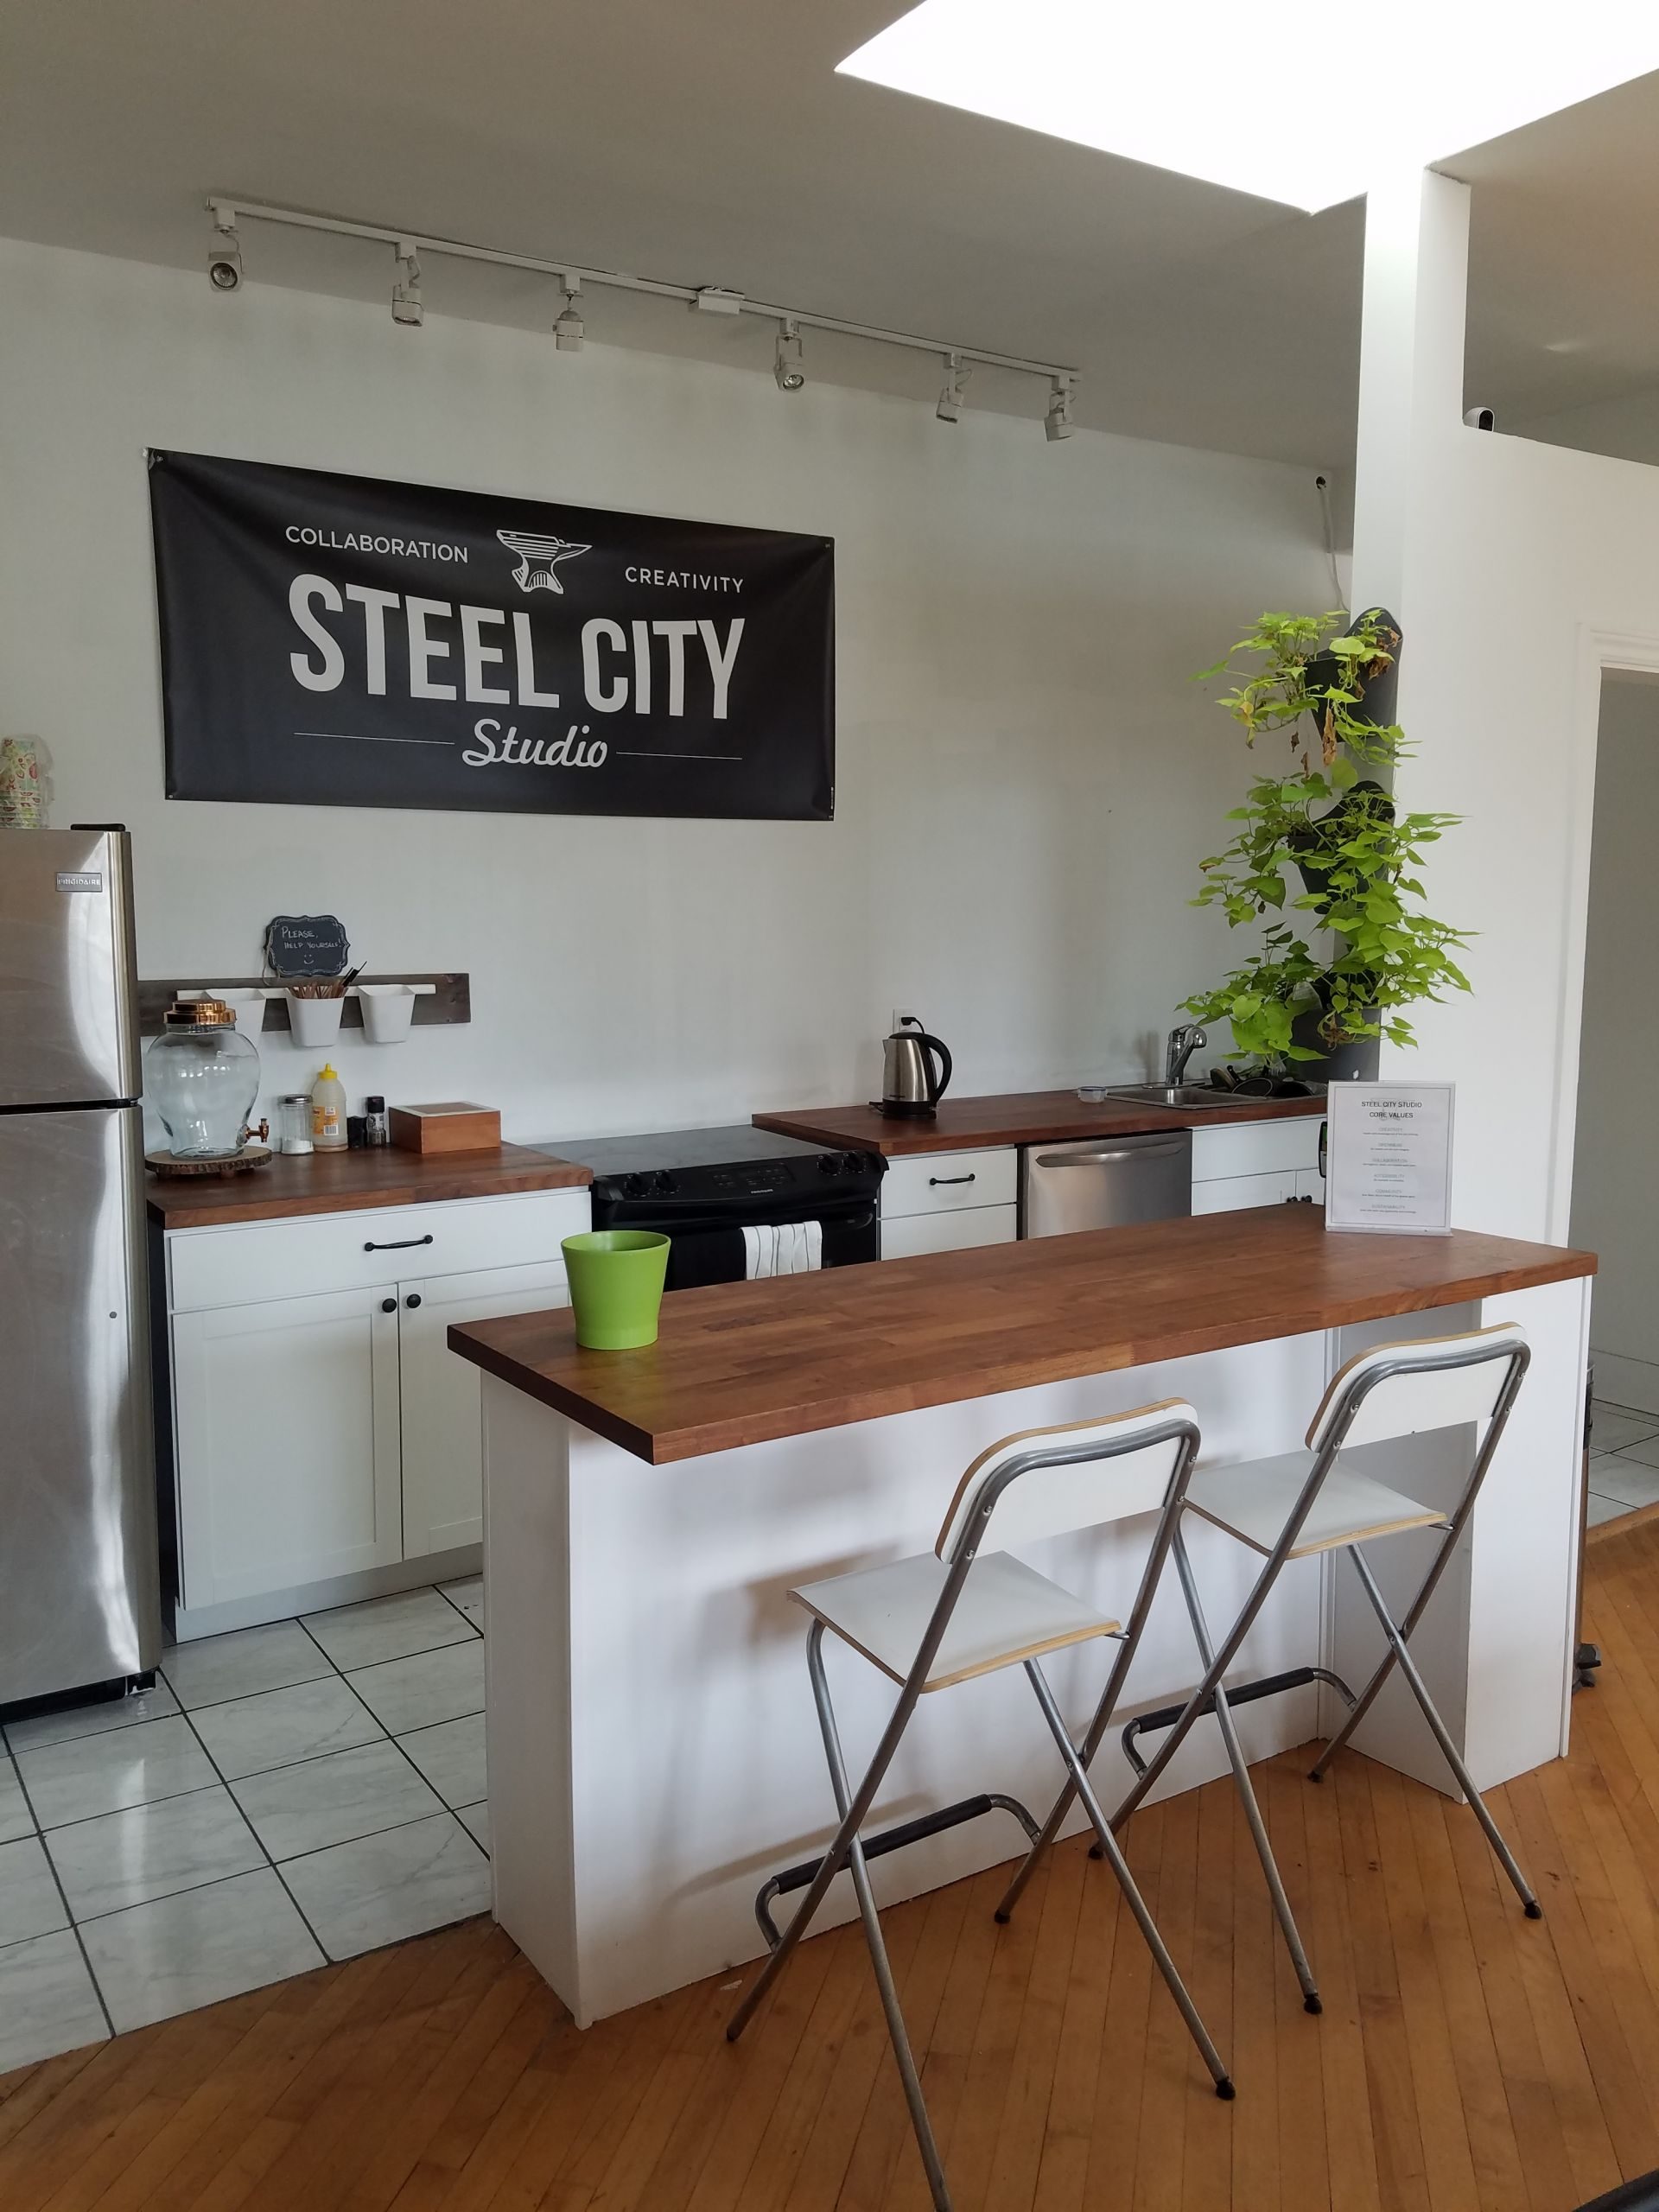 Steel City Studio, Hamilton